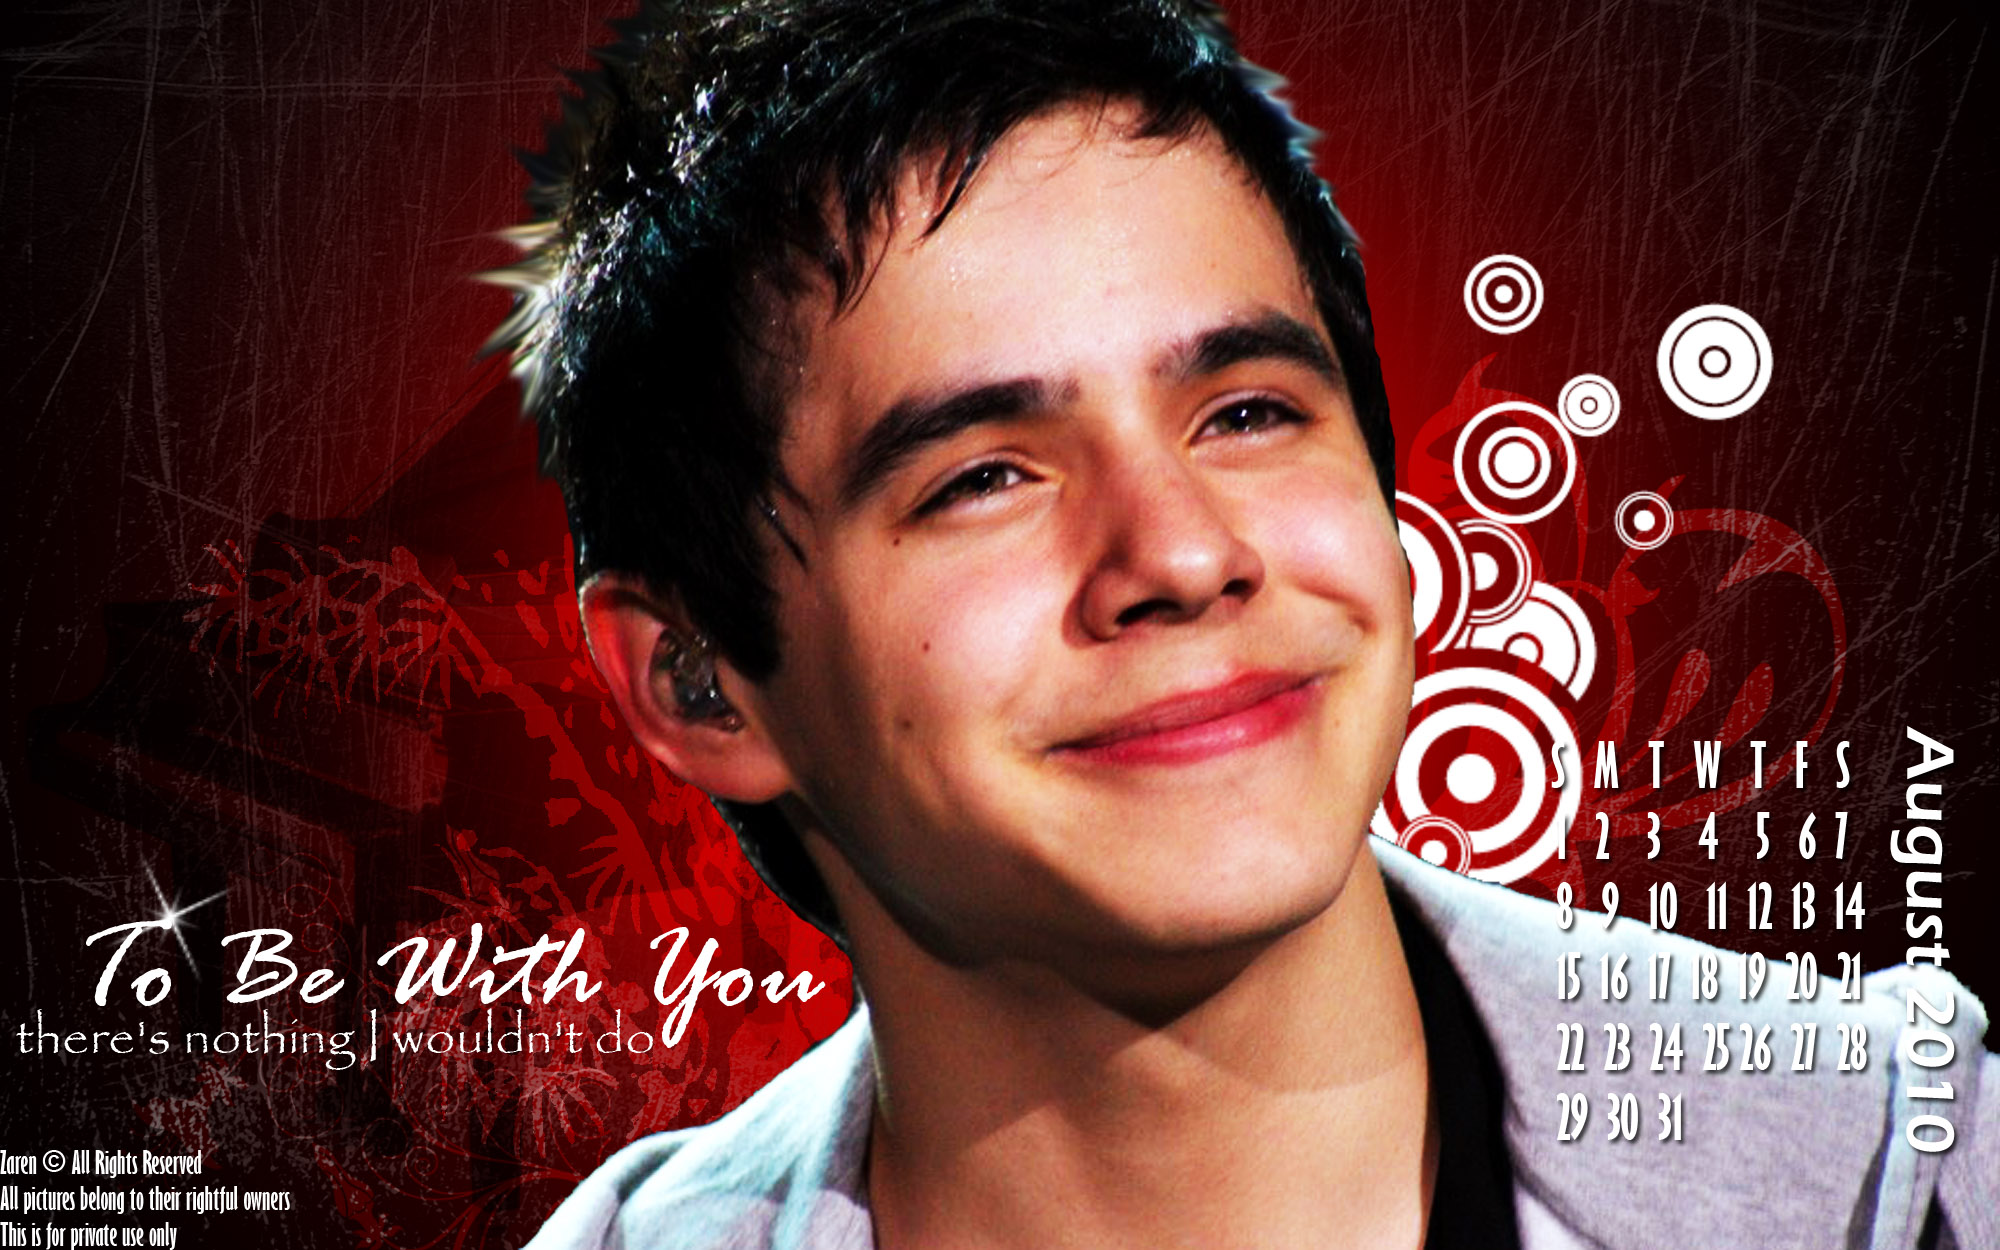 David Archuleta Picture